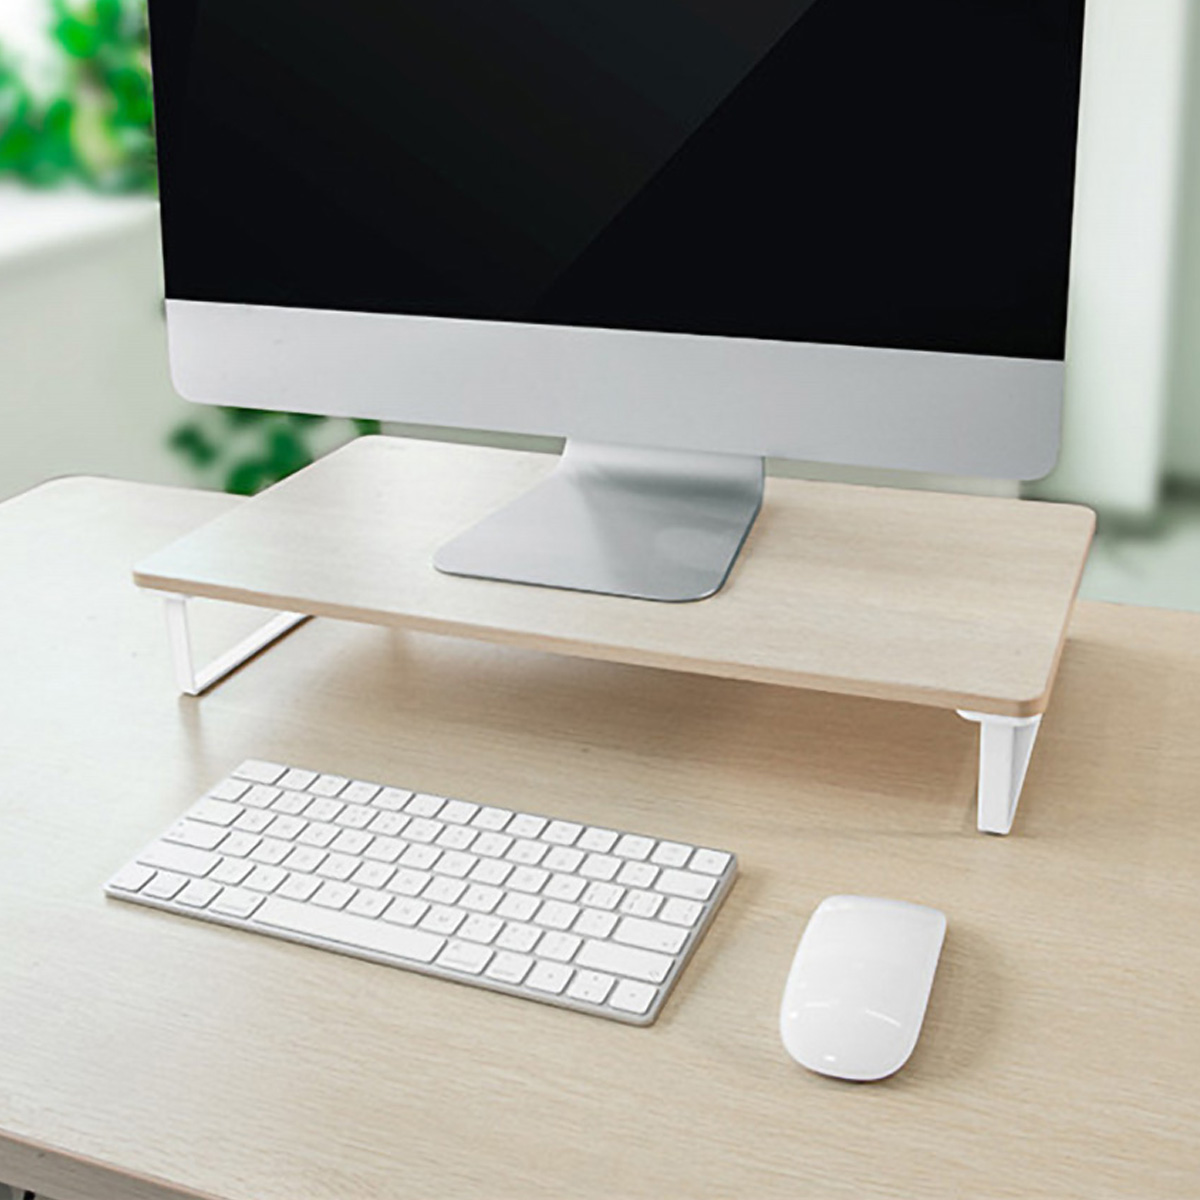 2019 New Computer Stand Monitor Increased Shelf Screen Heightened Base Desktop Keyboard Storage Shelf Elevated2019 New Computer Stand Monitor Increased Shelf Screen Heightened Base Desktop Keyboard Storage Shelf Elevated